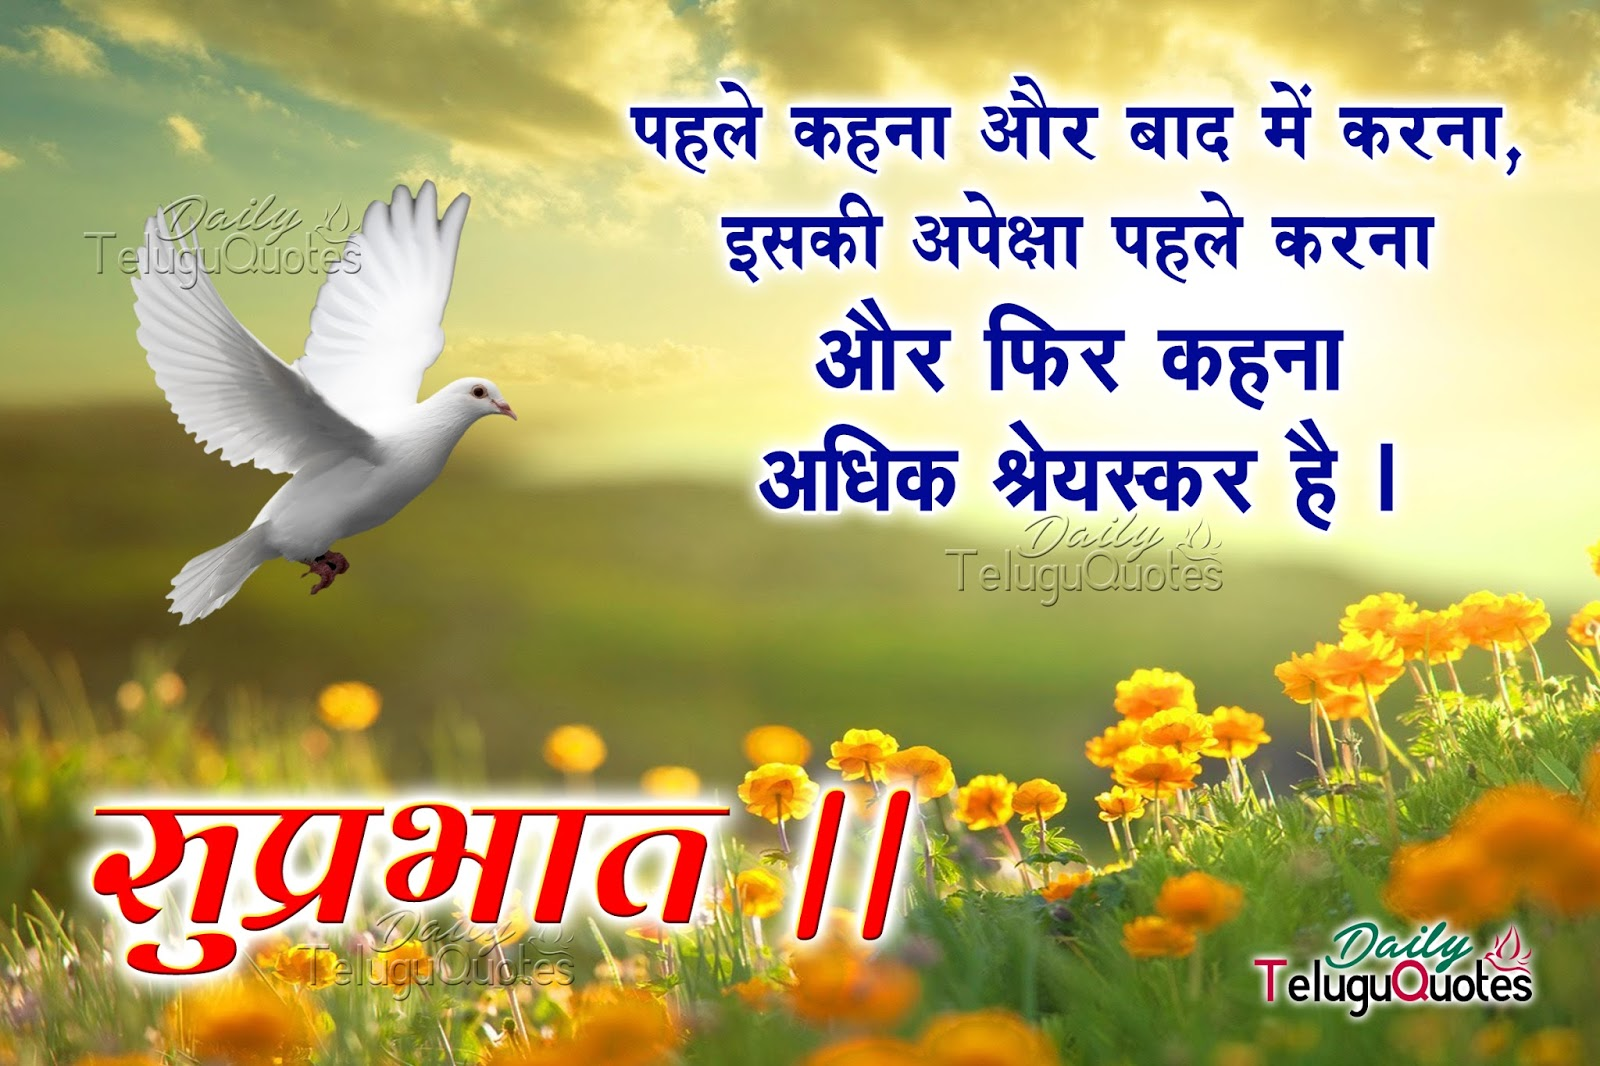 Hindi Shayari Good Morning Wallpaper Hd : Good Morning Hindi Quotes  Wallpaper In Full Hd